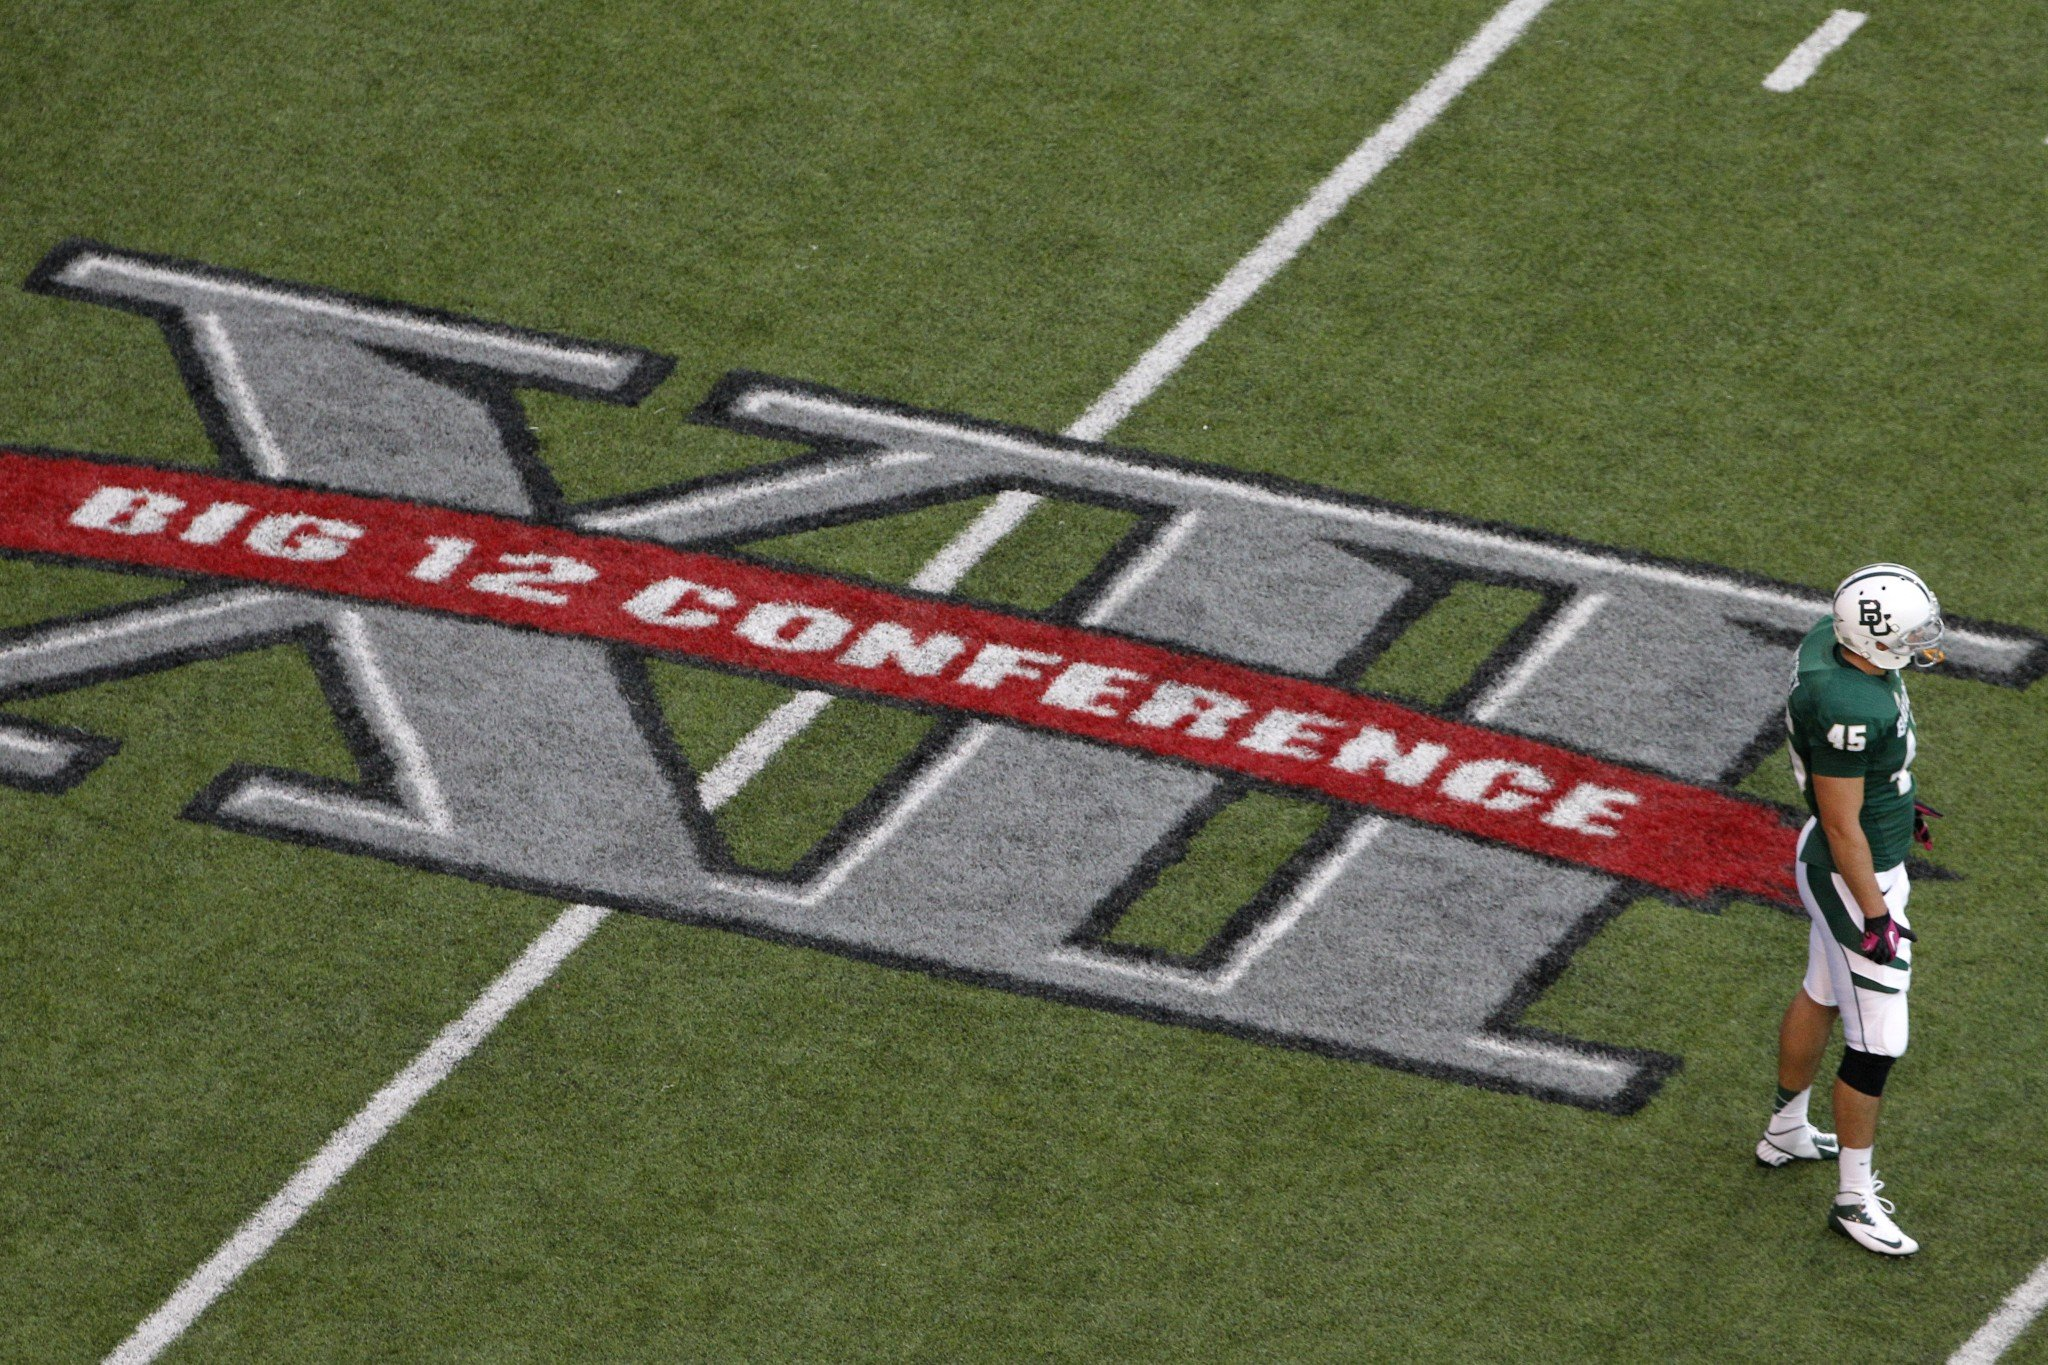 Big 12 Presidents Decide to Pass on Expansion